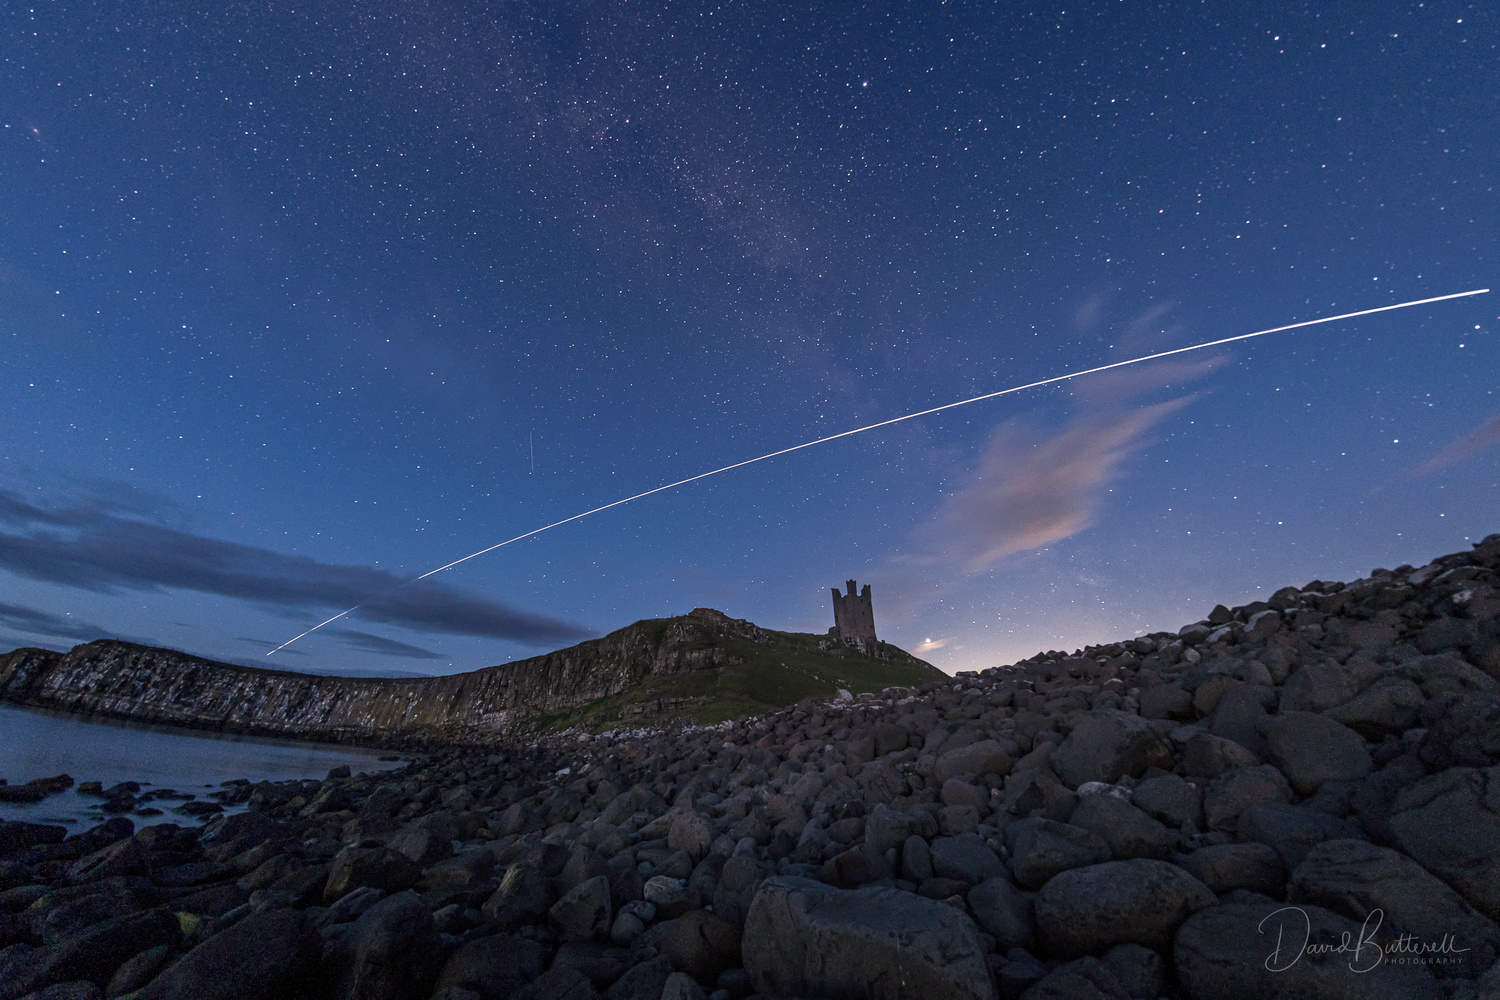 The Castle and the Space Station by David Butterell